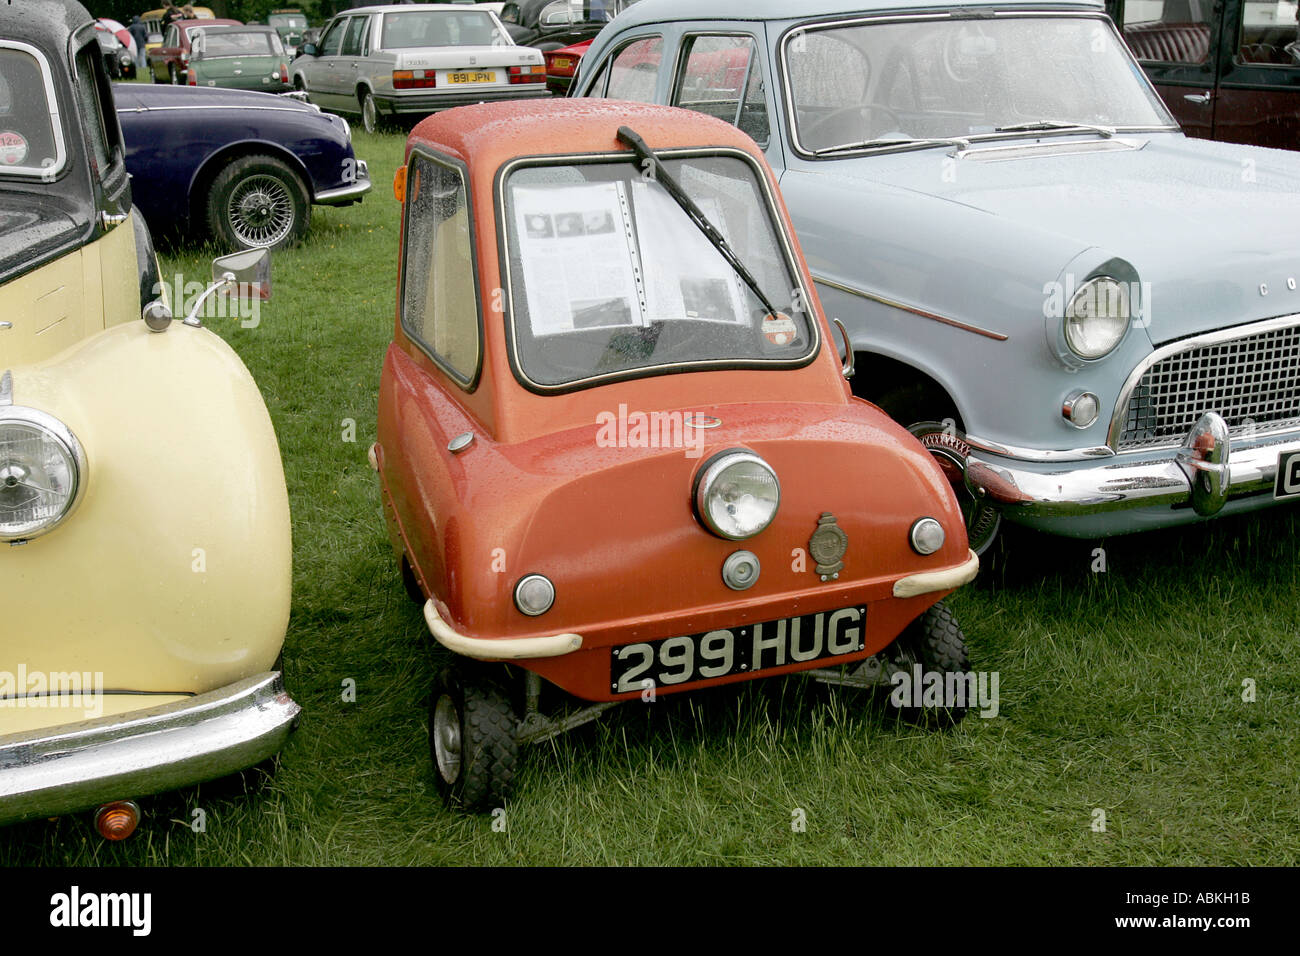 old little tiny car classic history vehicle vintage antipodes ...